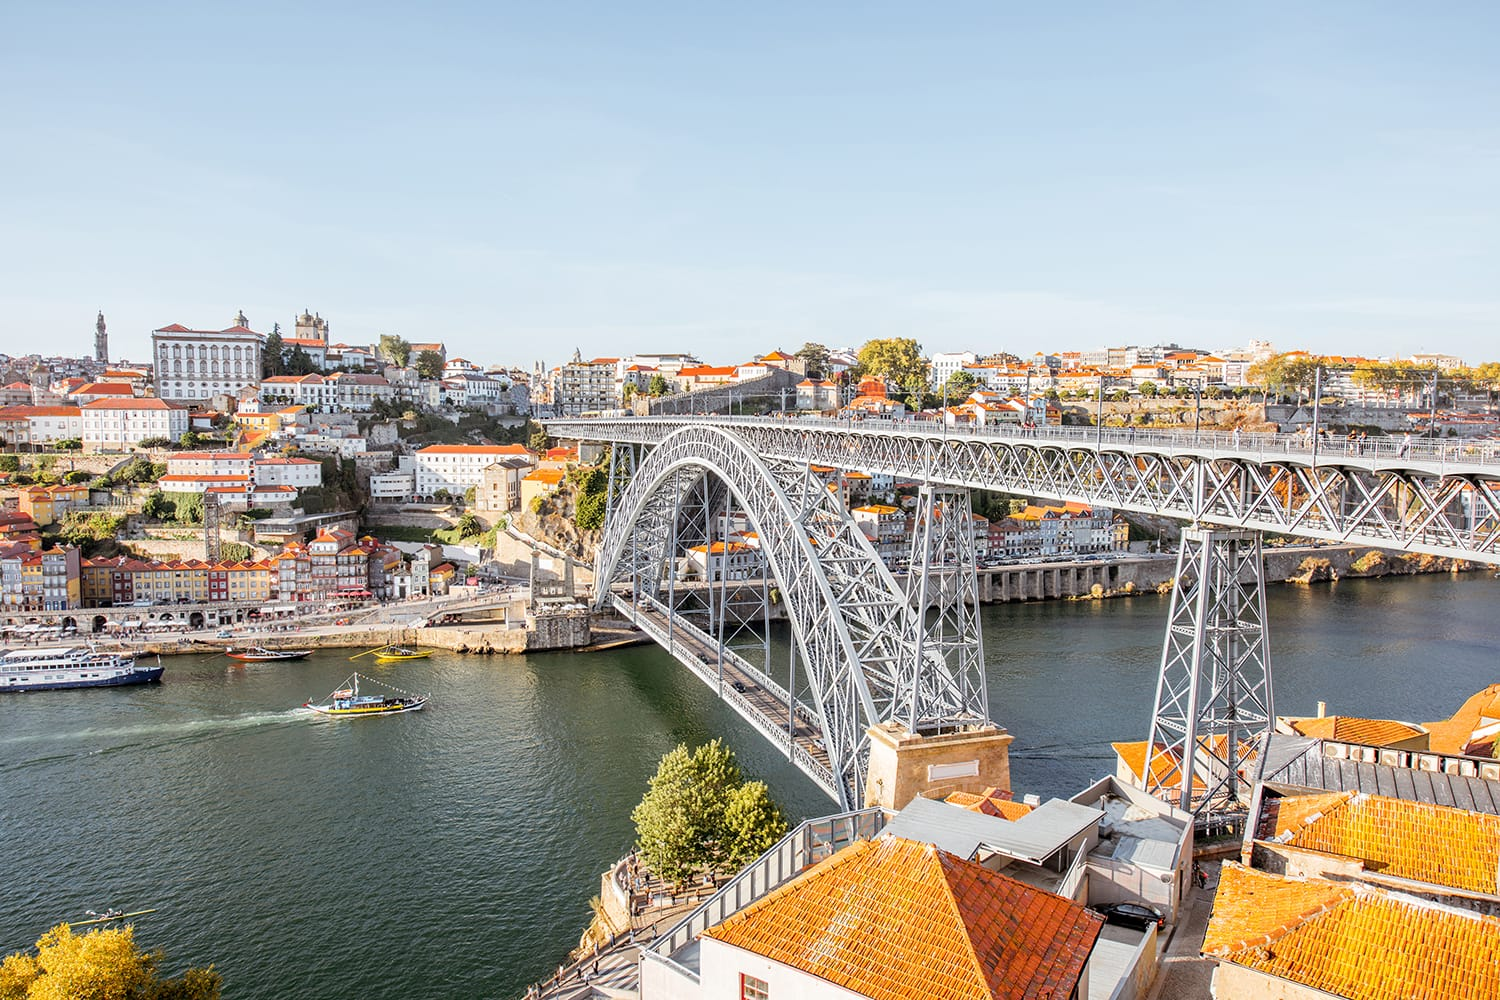 Landscape view the beautiful old town with famous iron bridge above the Douro river during the sunset in Porto city, Portugal